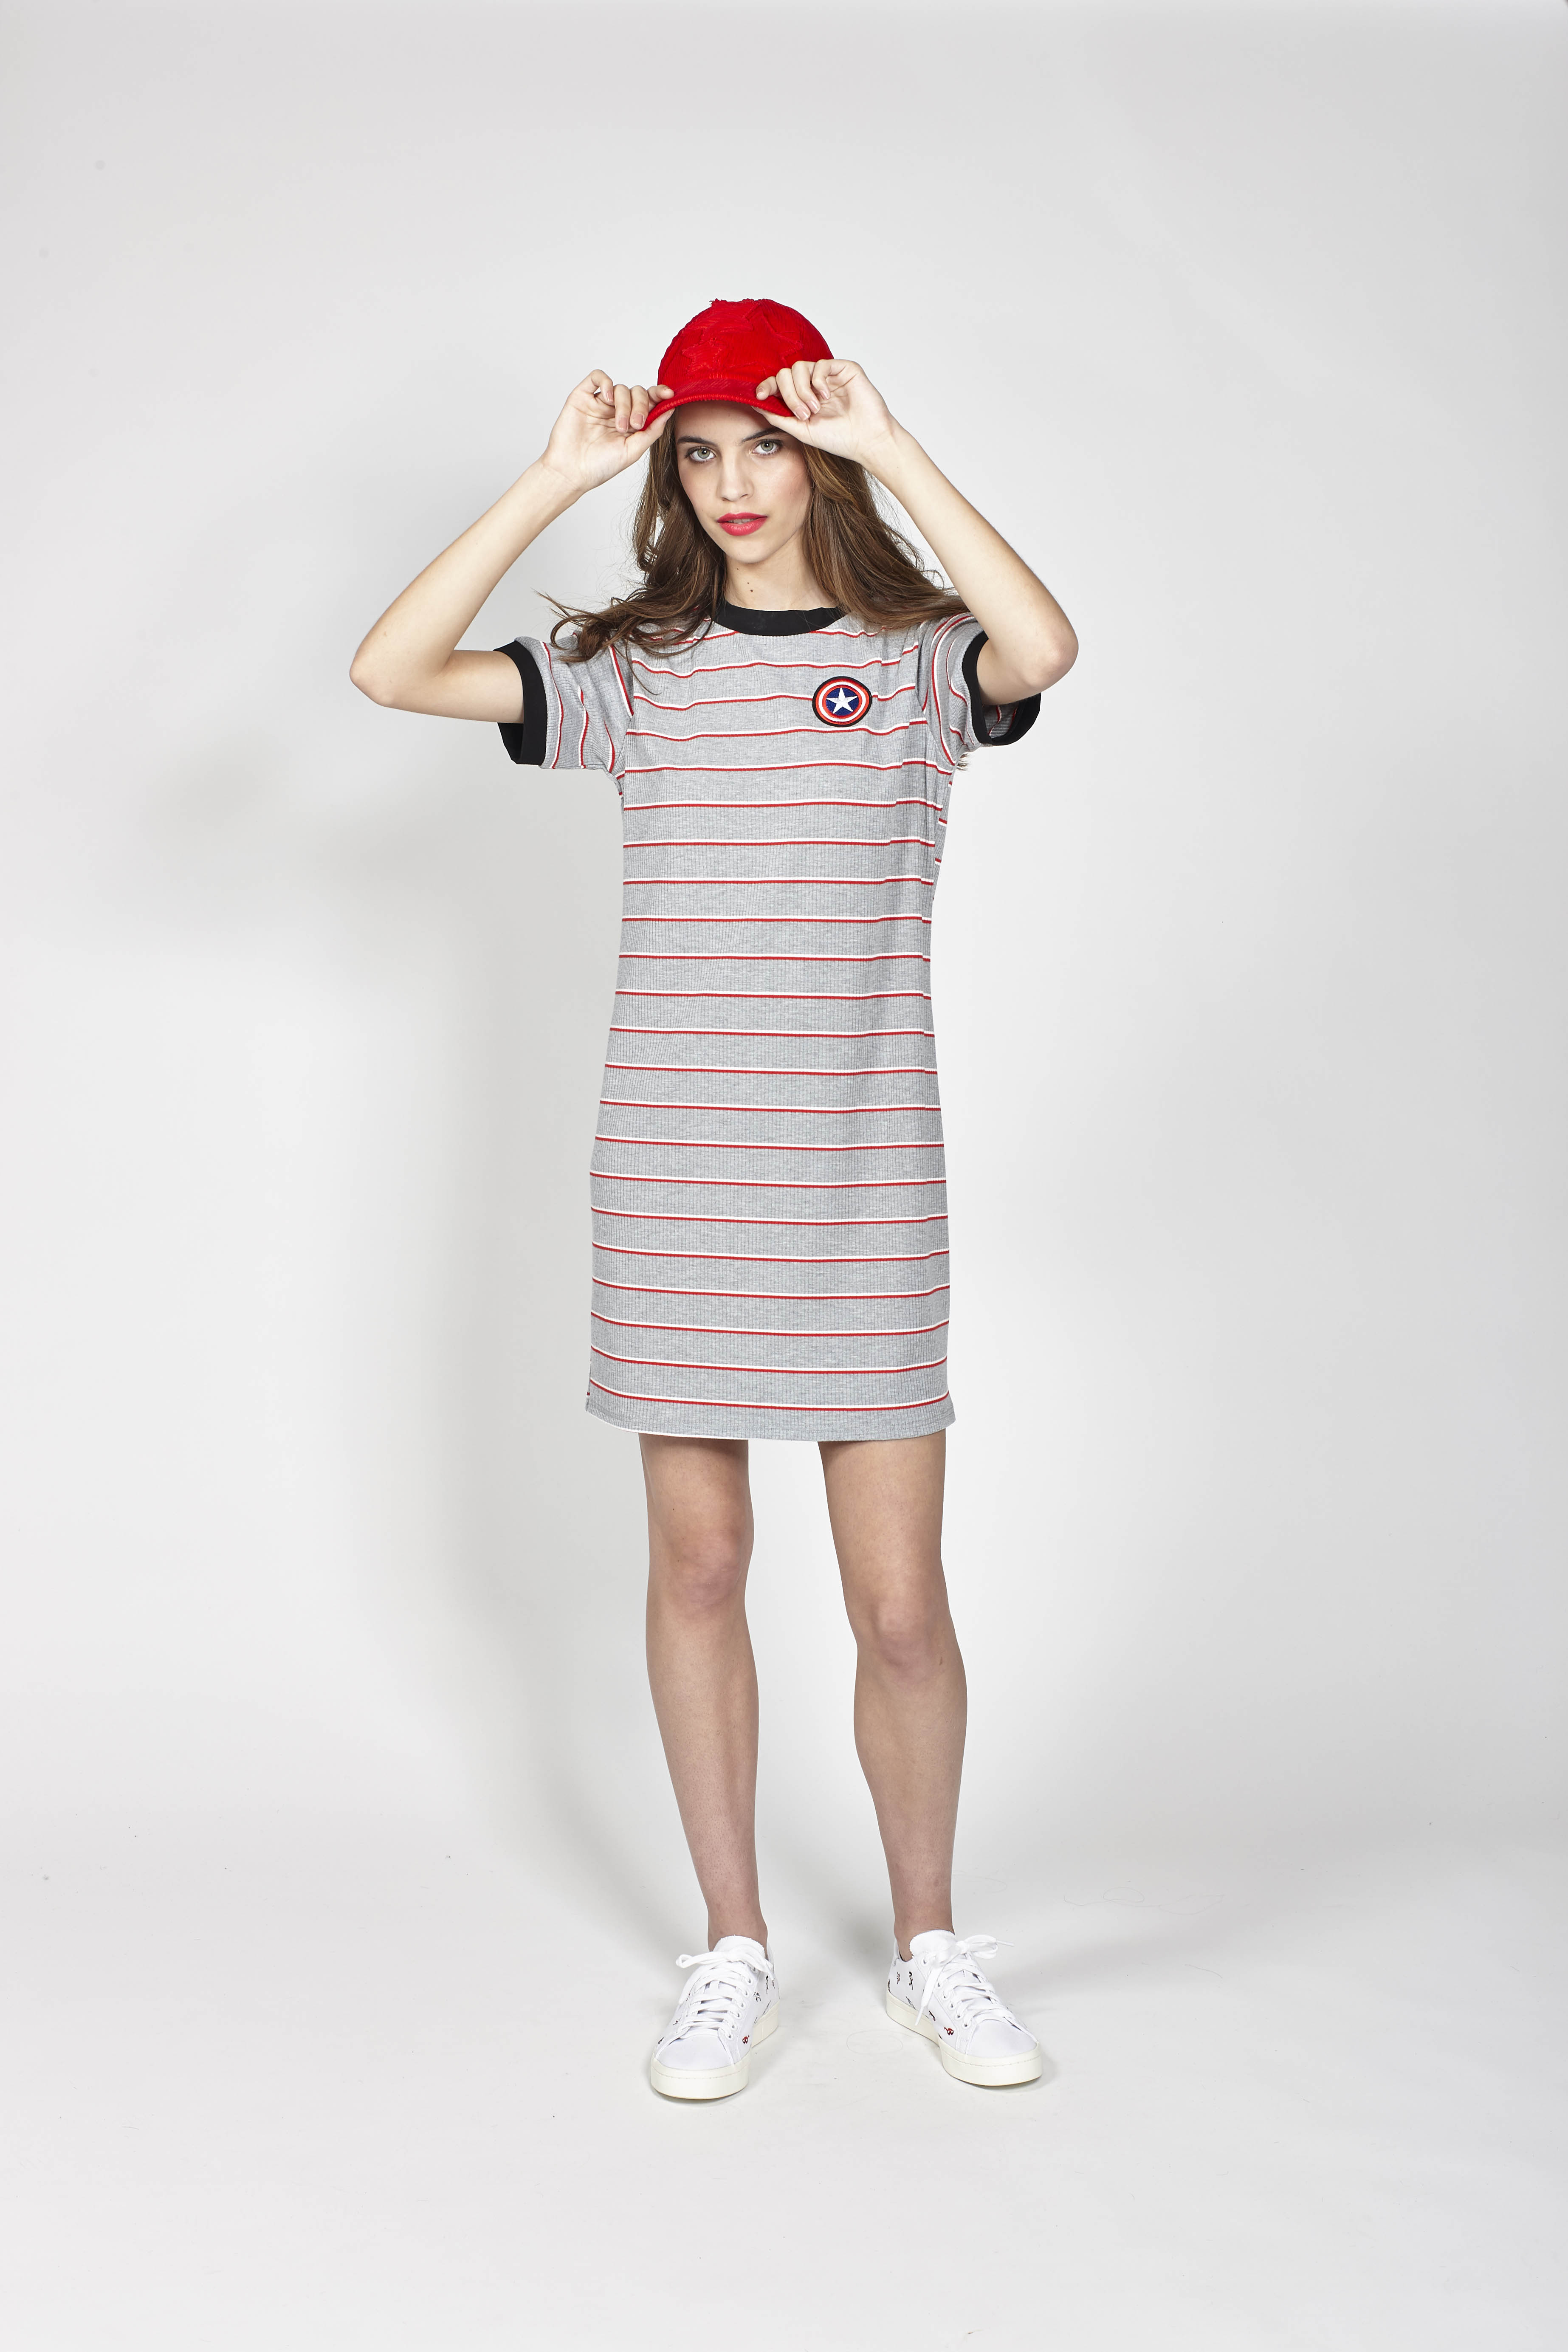 LB1090 LEO+BE Wonder Dress, RRP$139.00